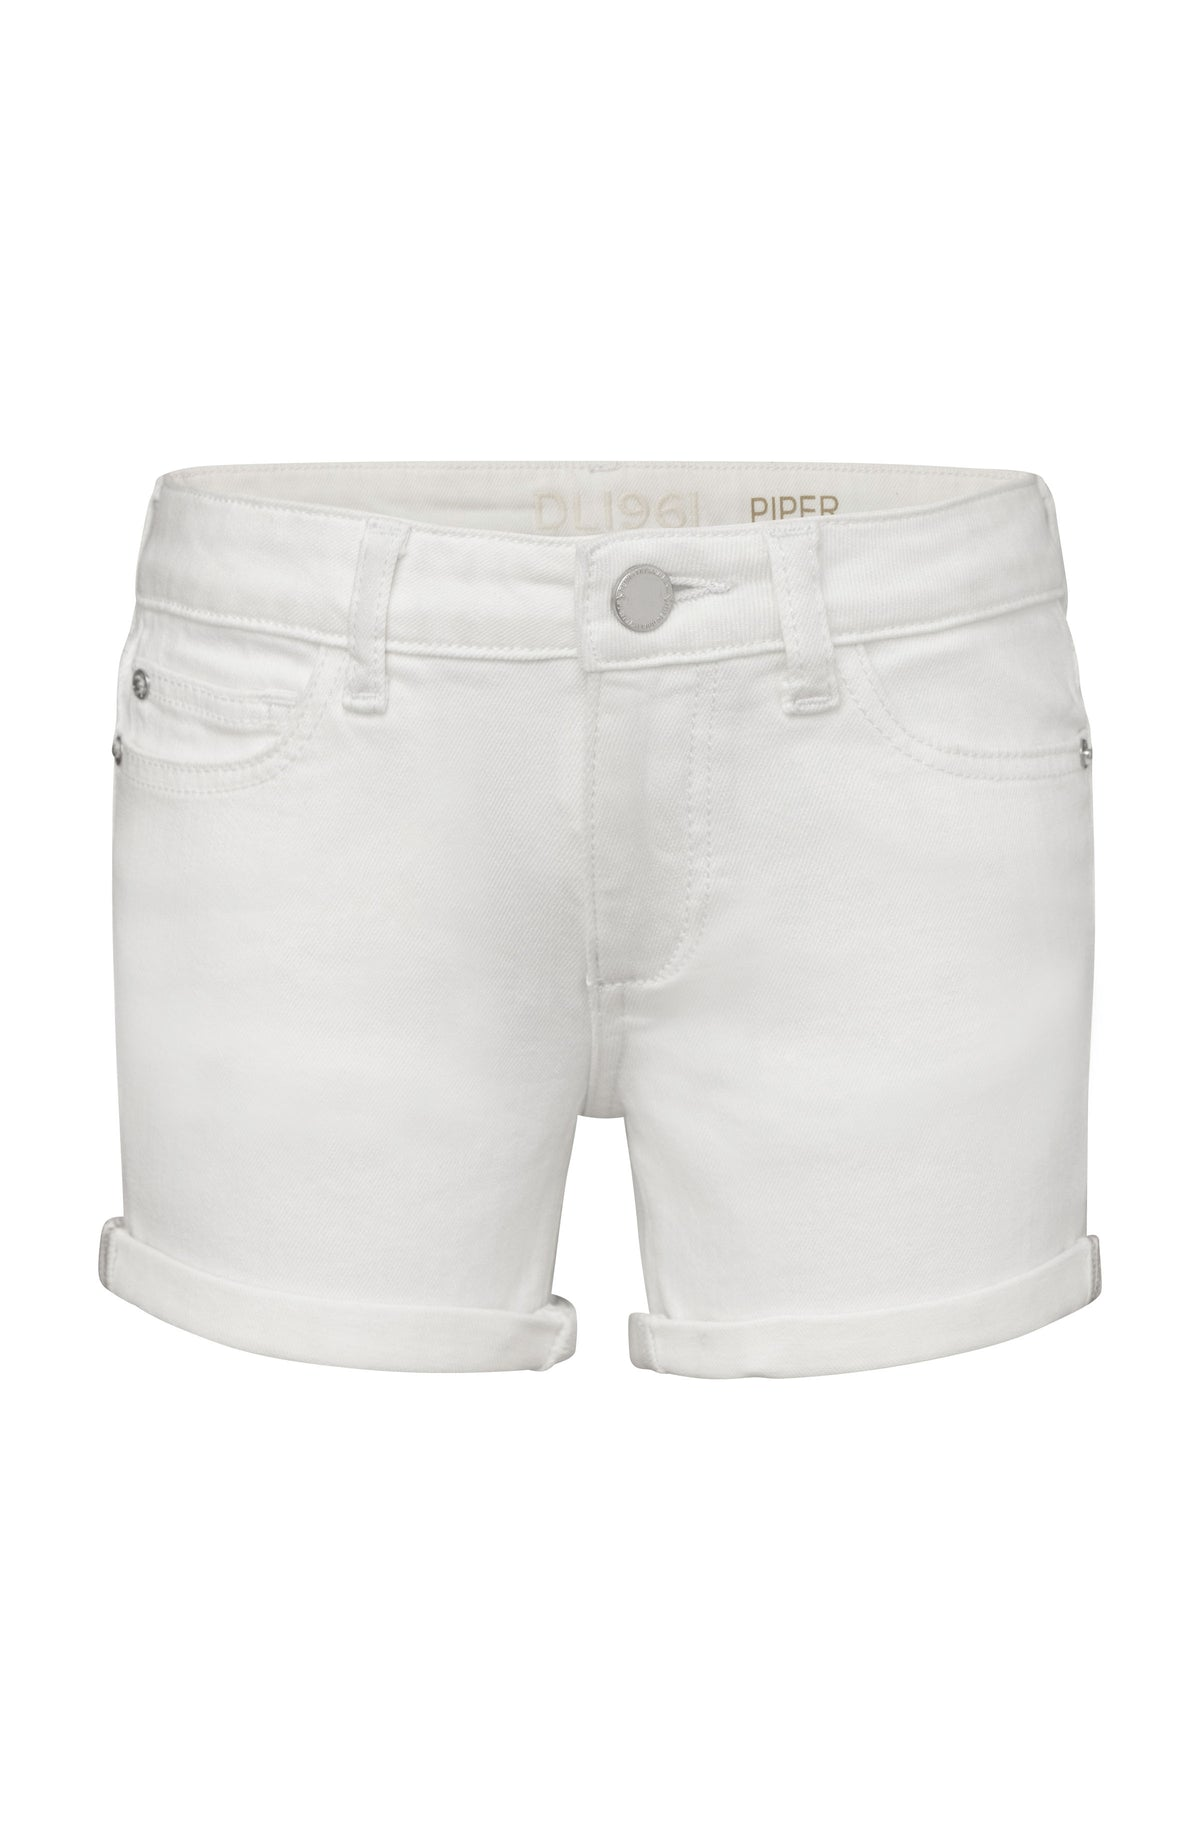 Piper Cuffed Short-WHT